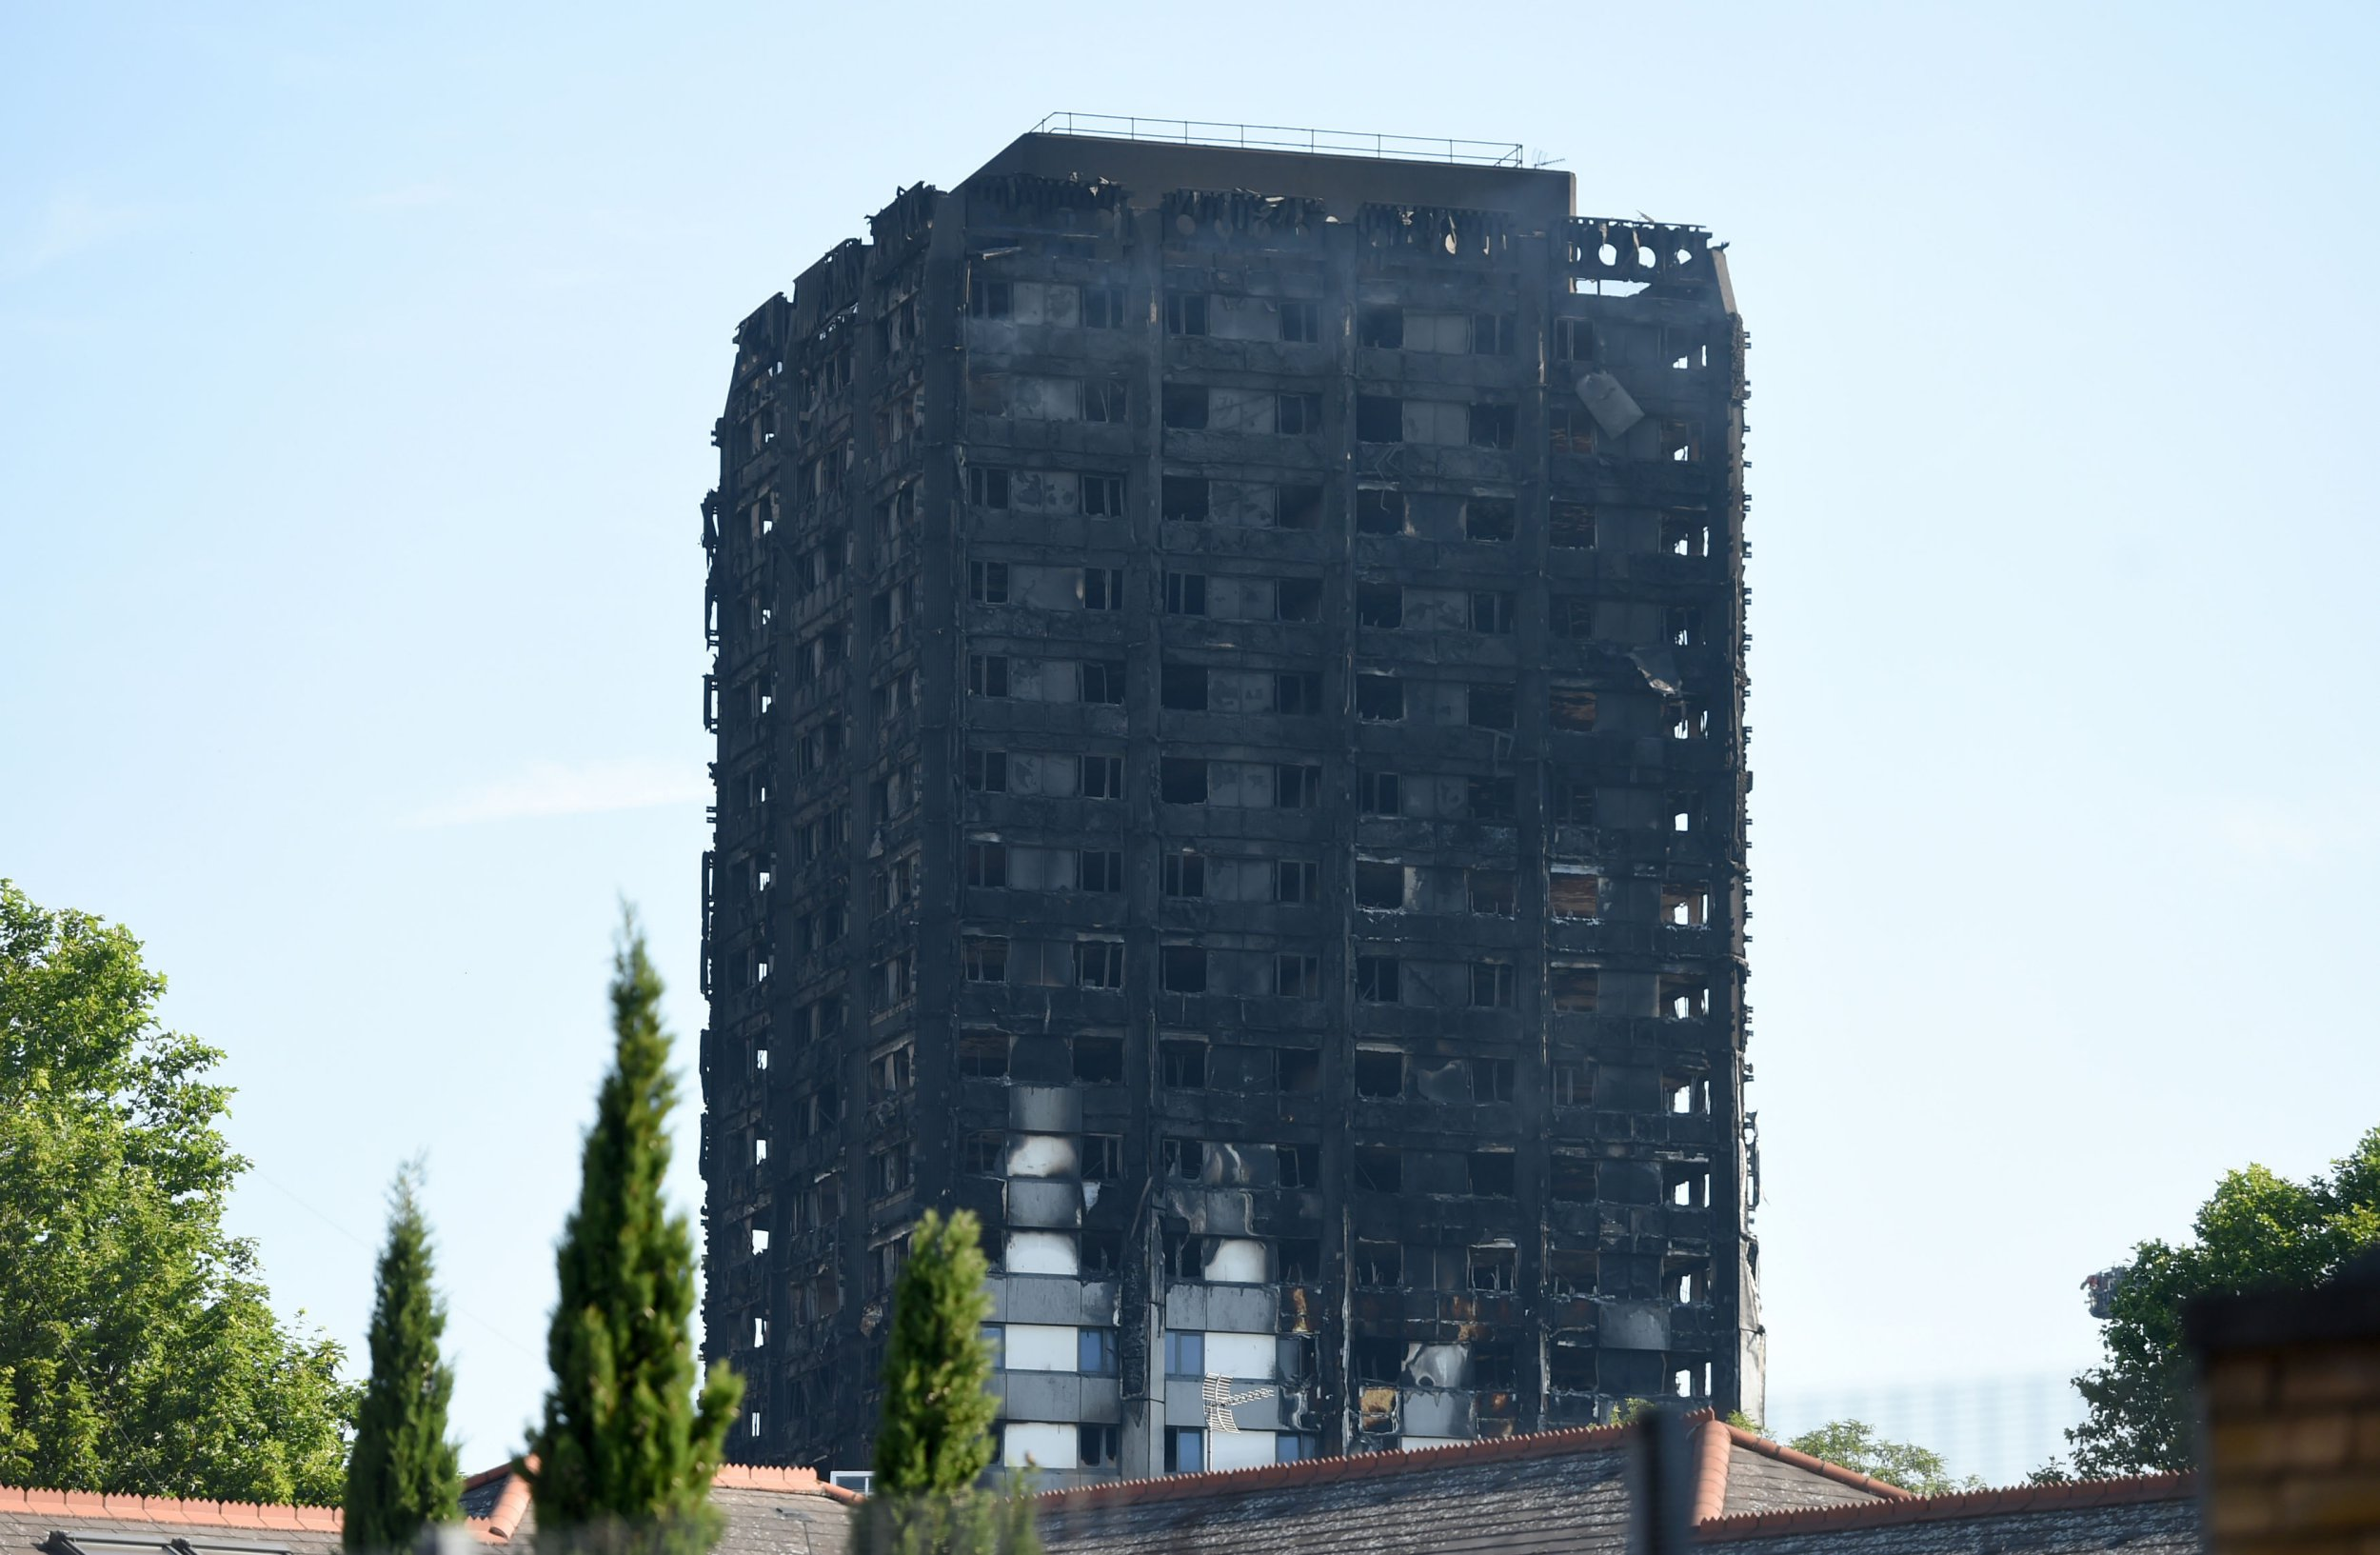 Man overseeing Grenfell disaster previously advised against fitting sprinklers